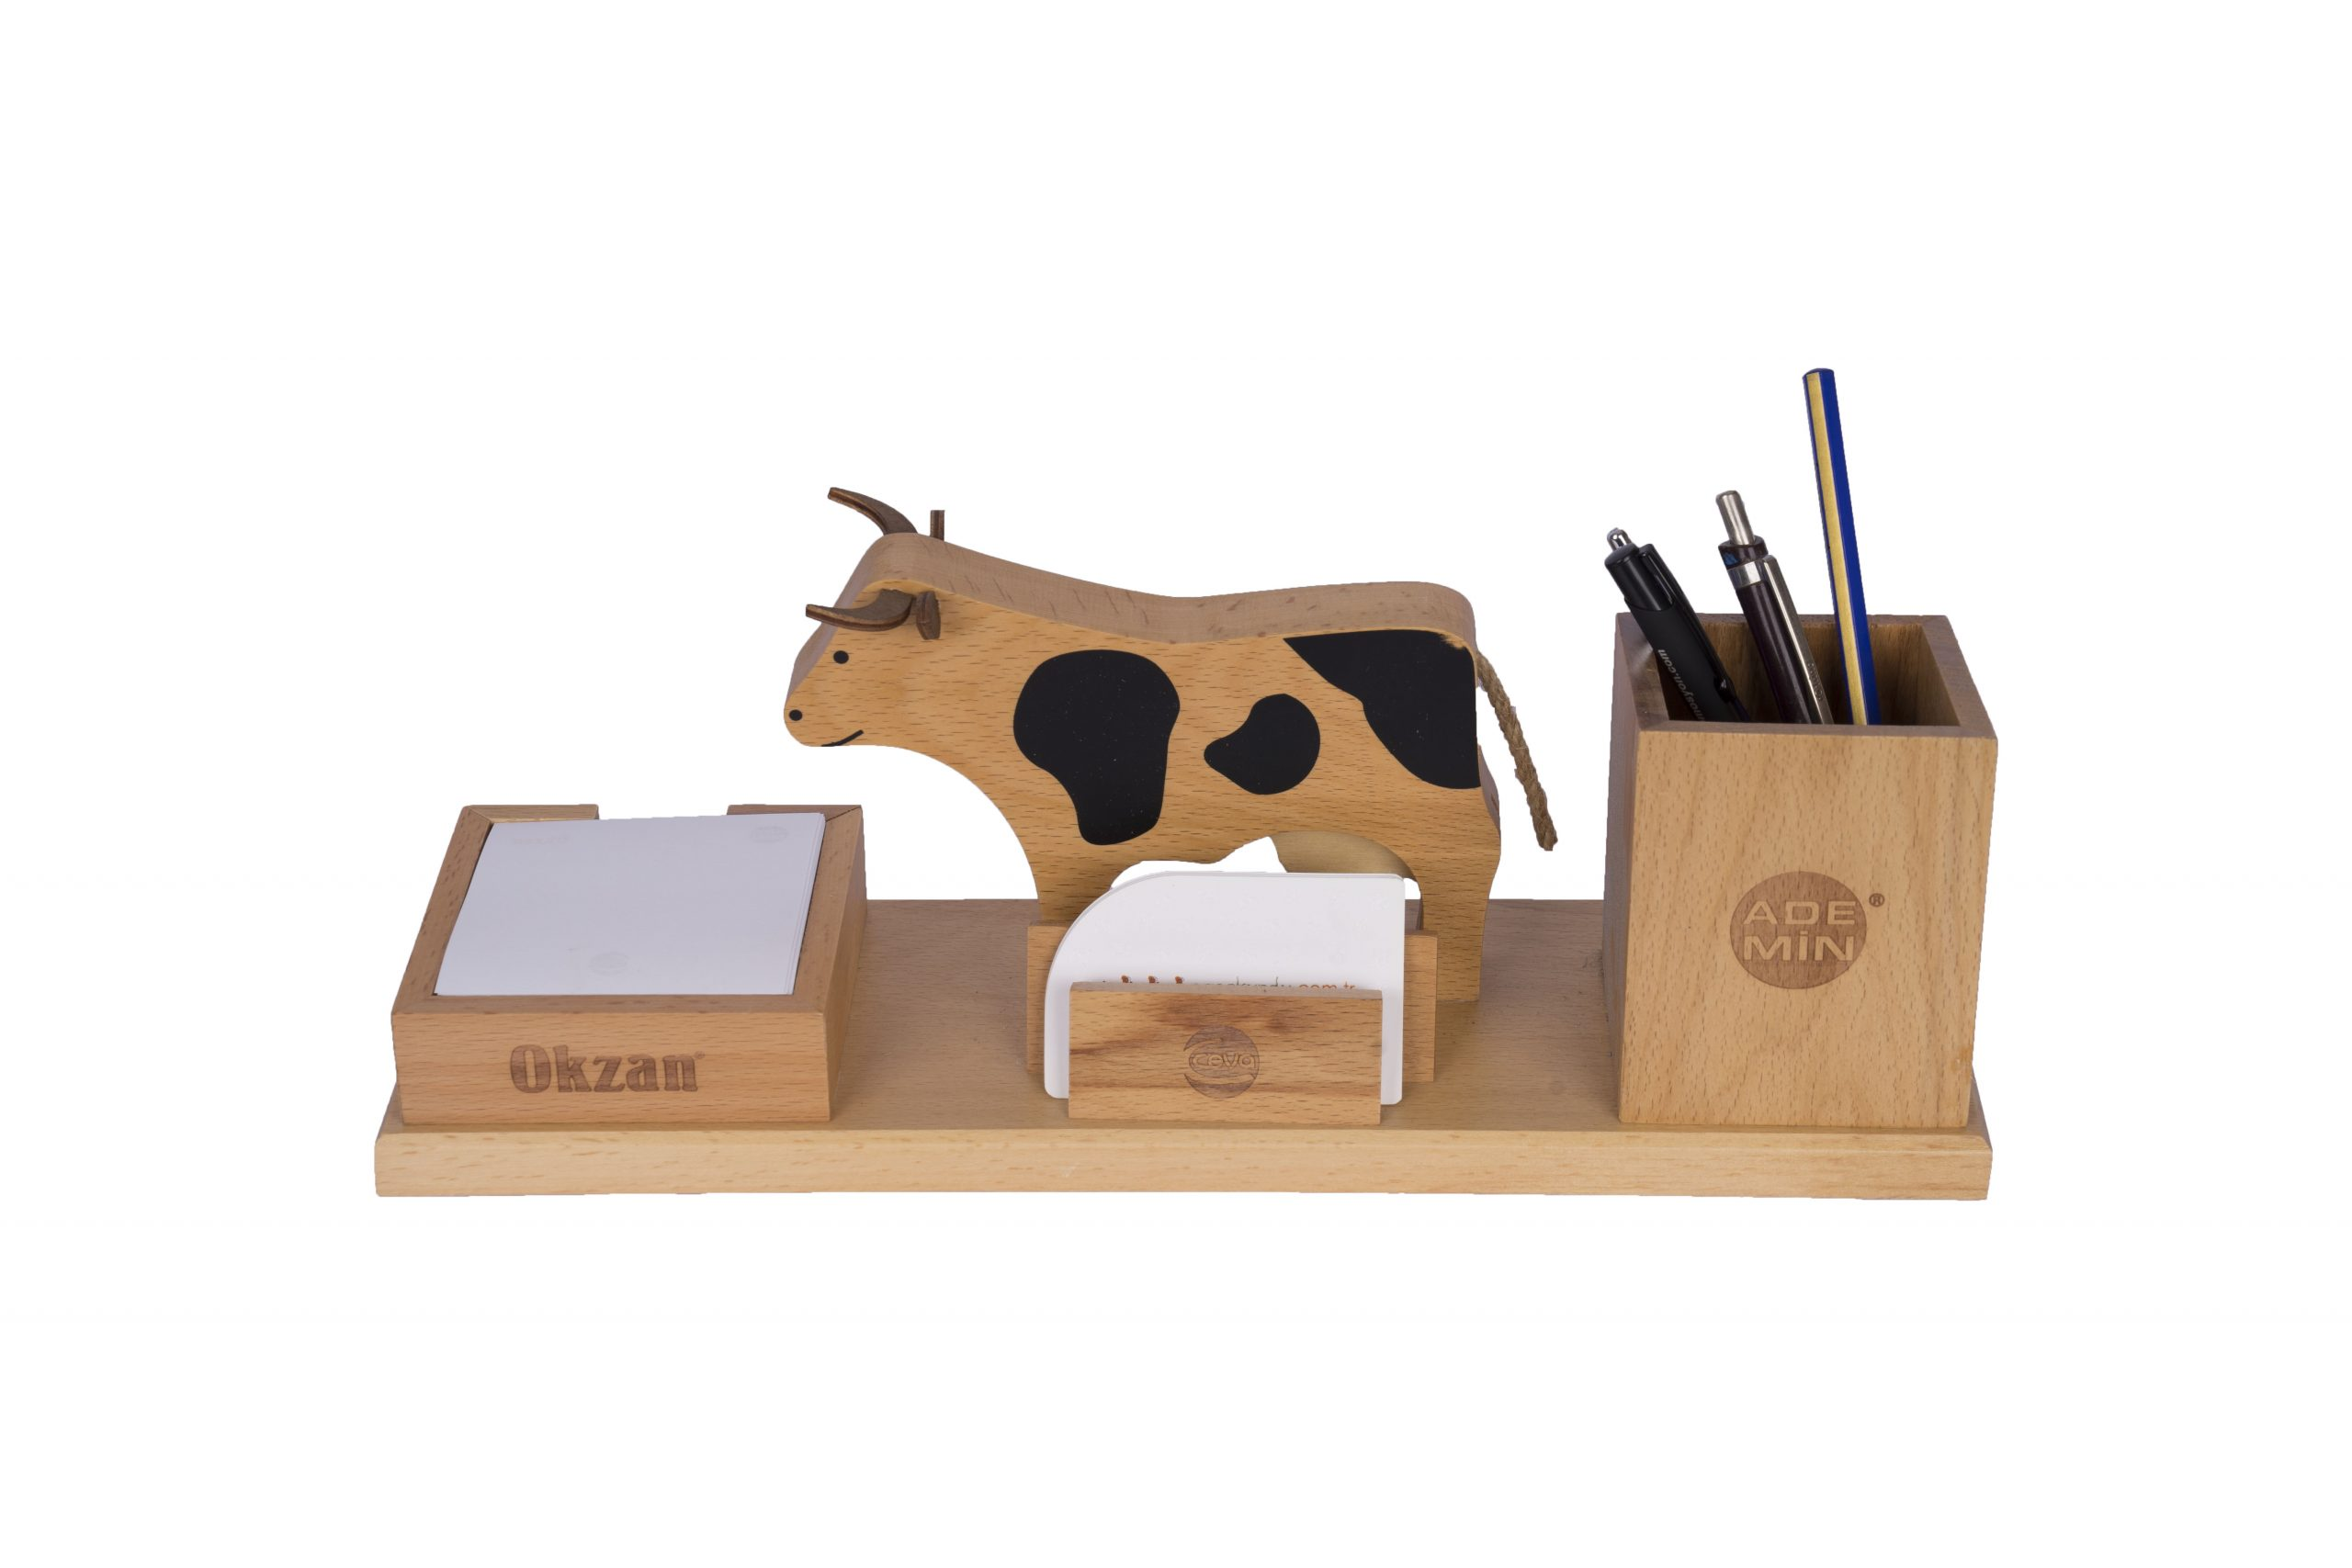 Wholesale Wooden Office Products